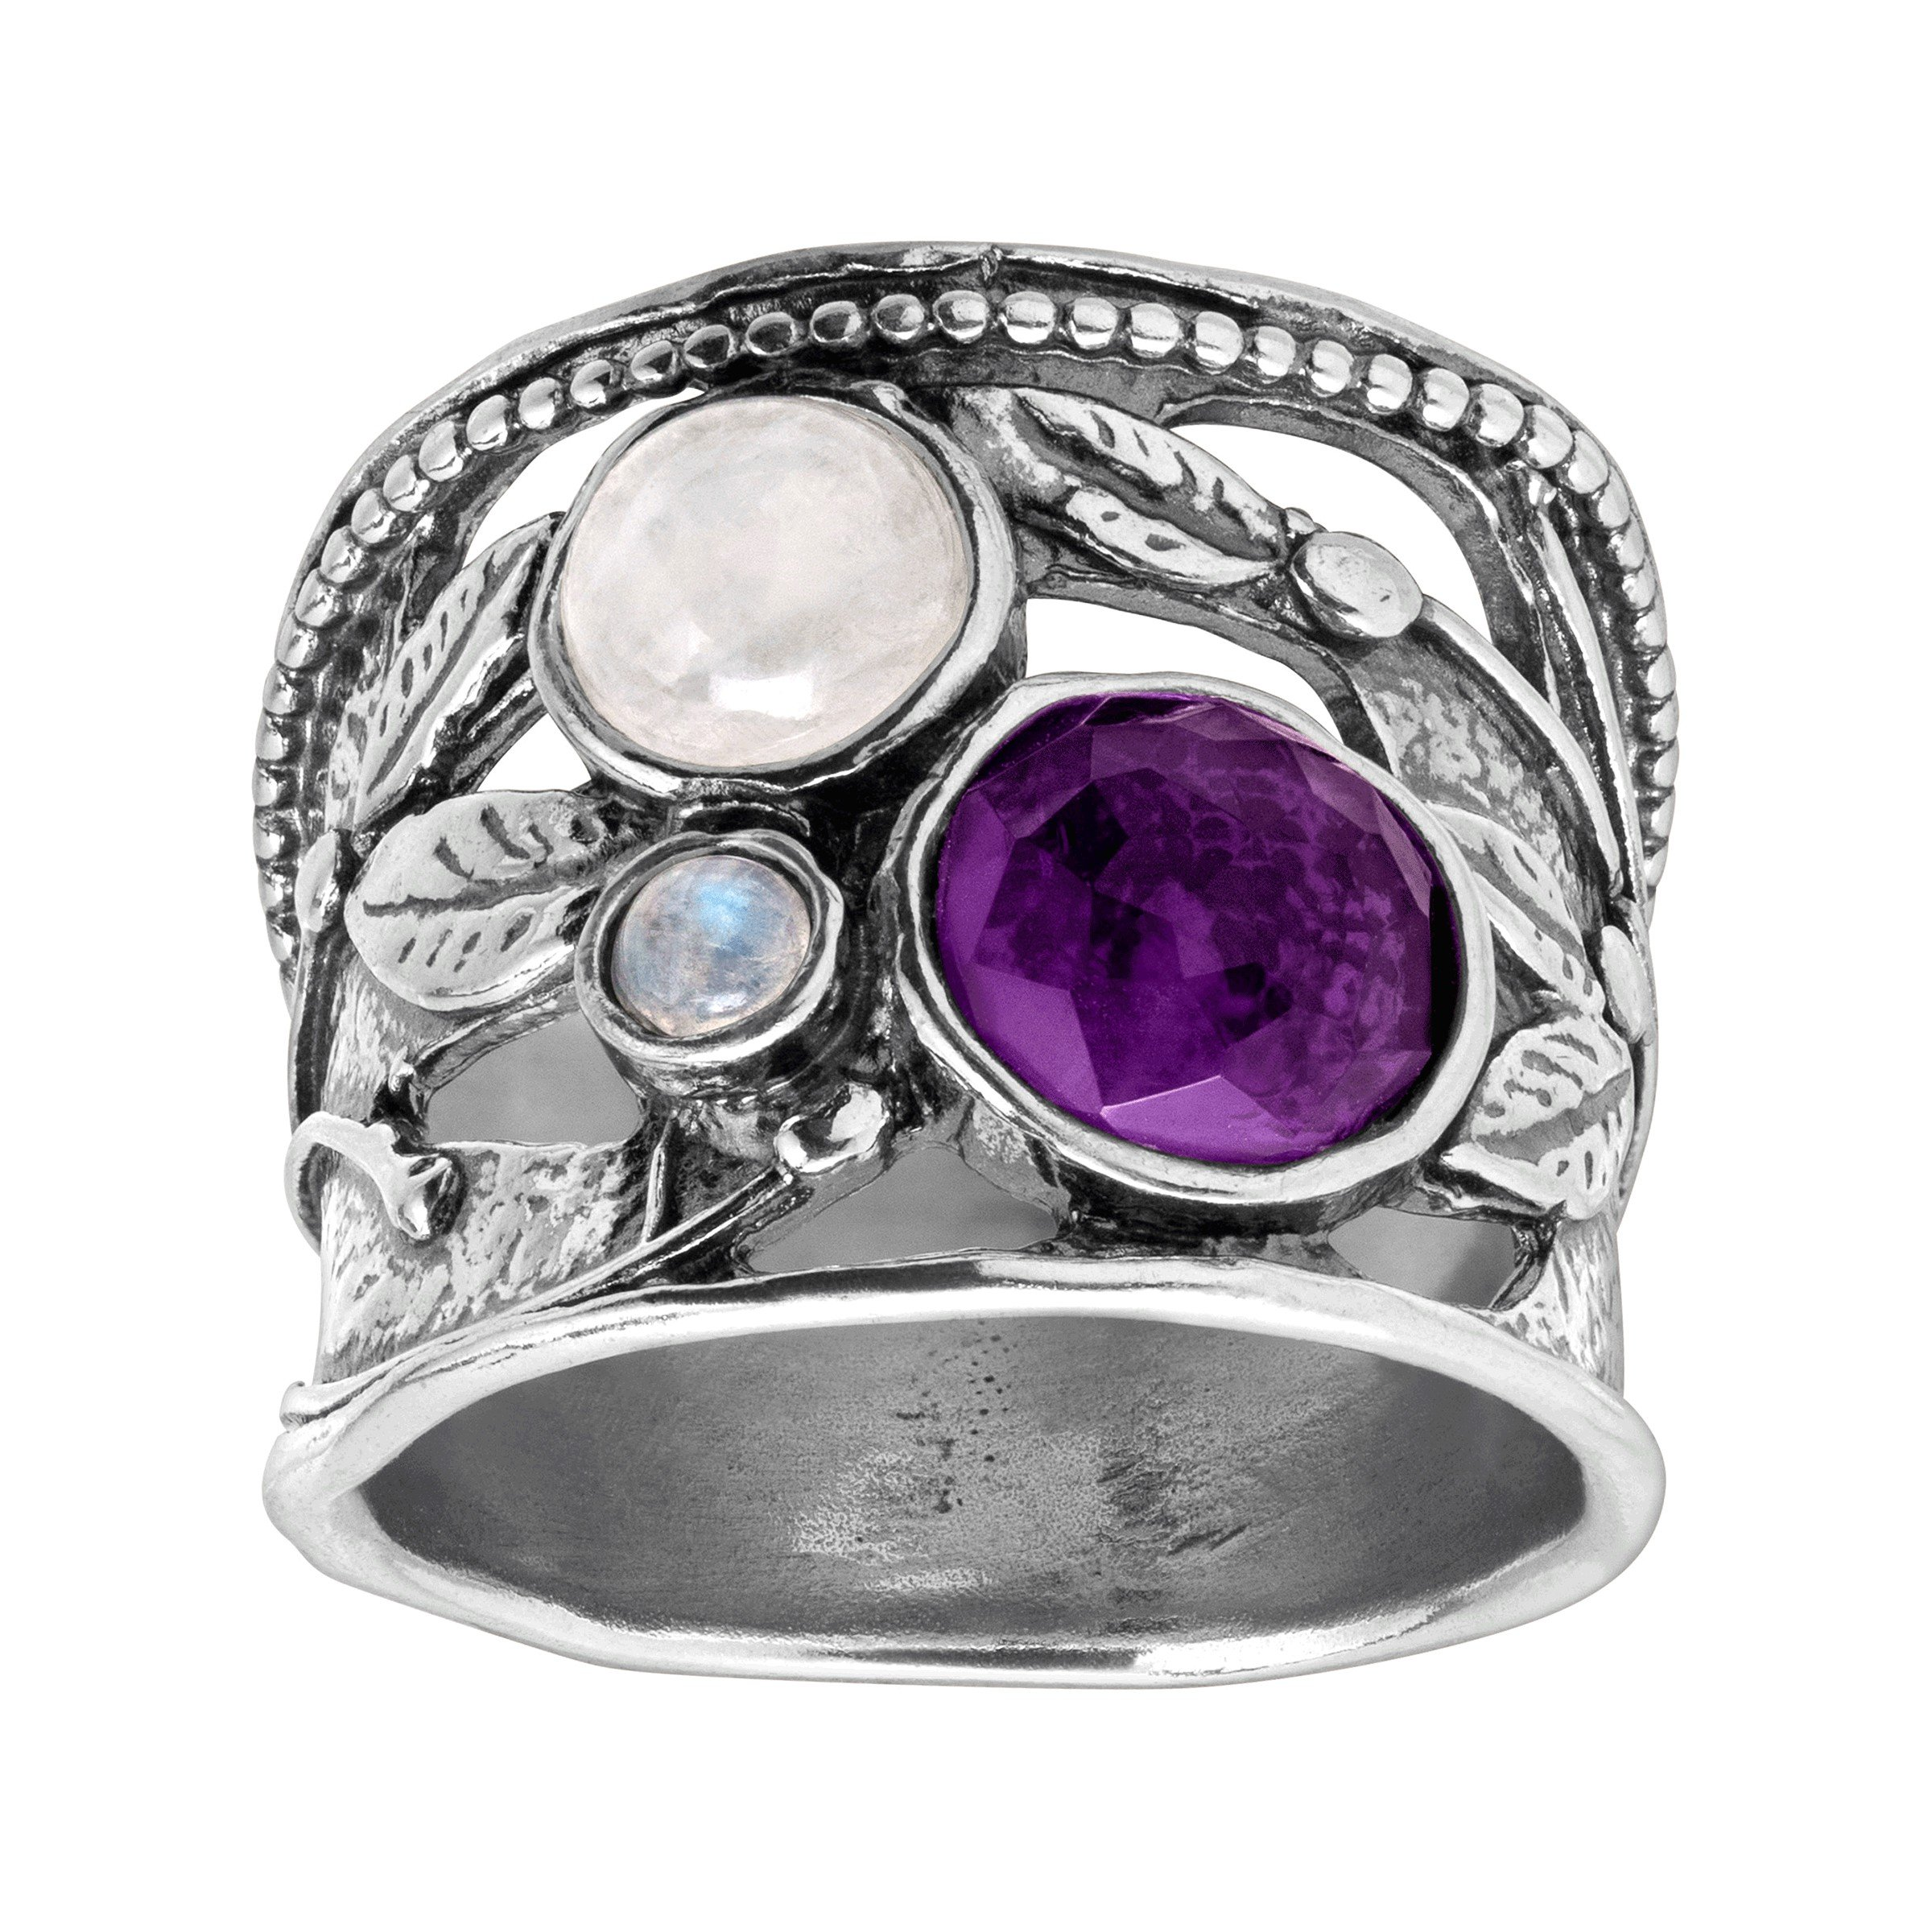 Silpada 'Heavenly' 3 ct Moonstone & Natural Amethyst Ring in Sterling Silver